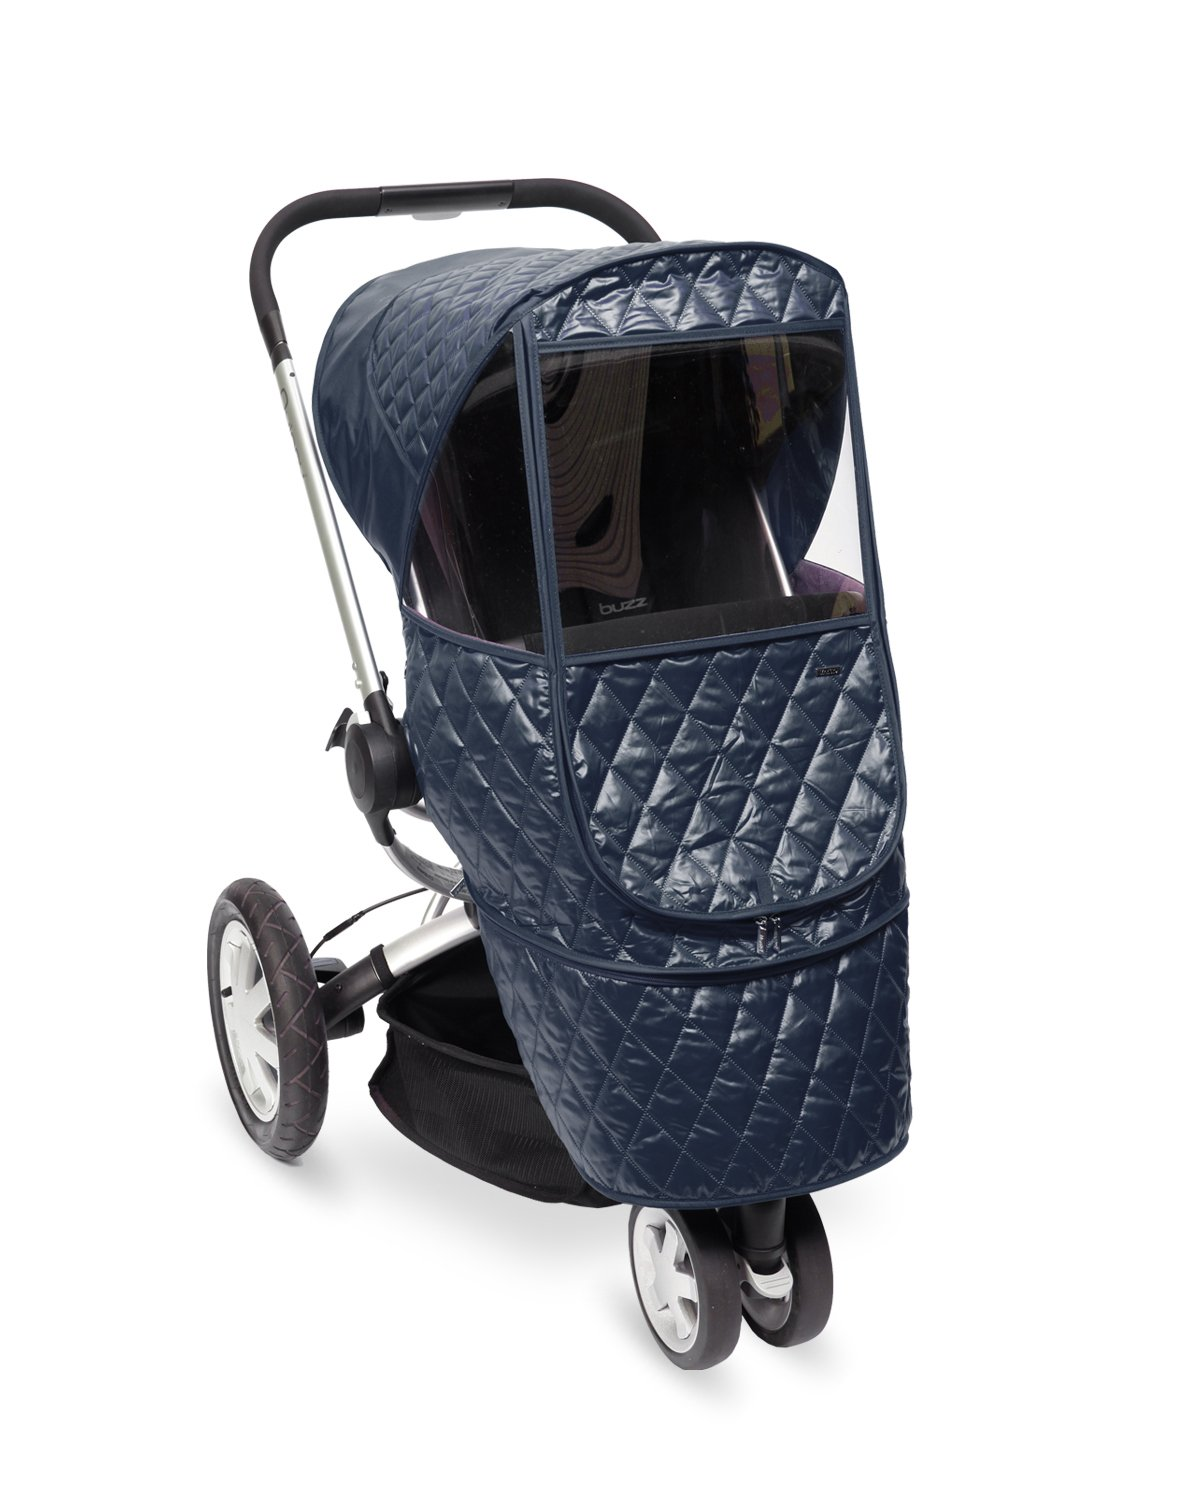 Manito Castle Beta Stroller Weather Shield (Navy) by Manito